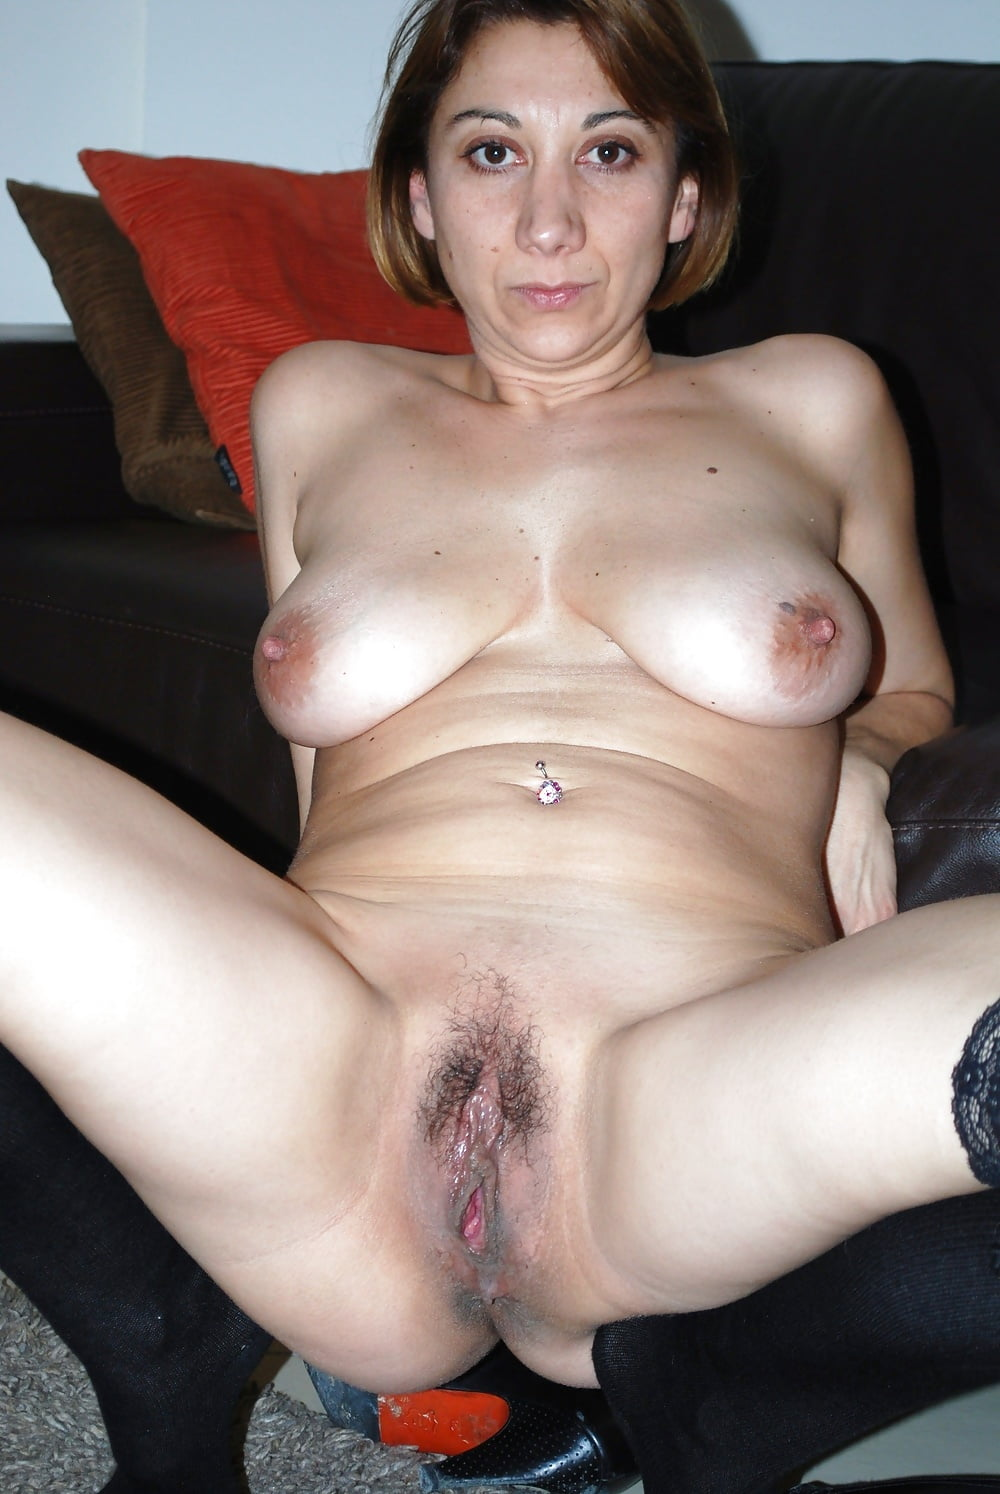 Mature milf with big tits got her pussy licked